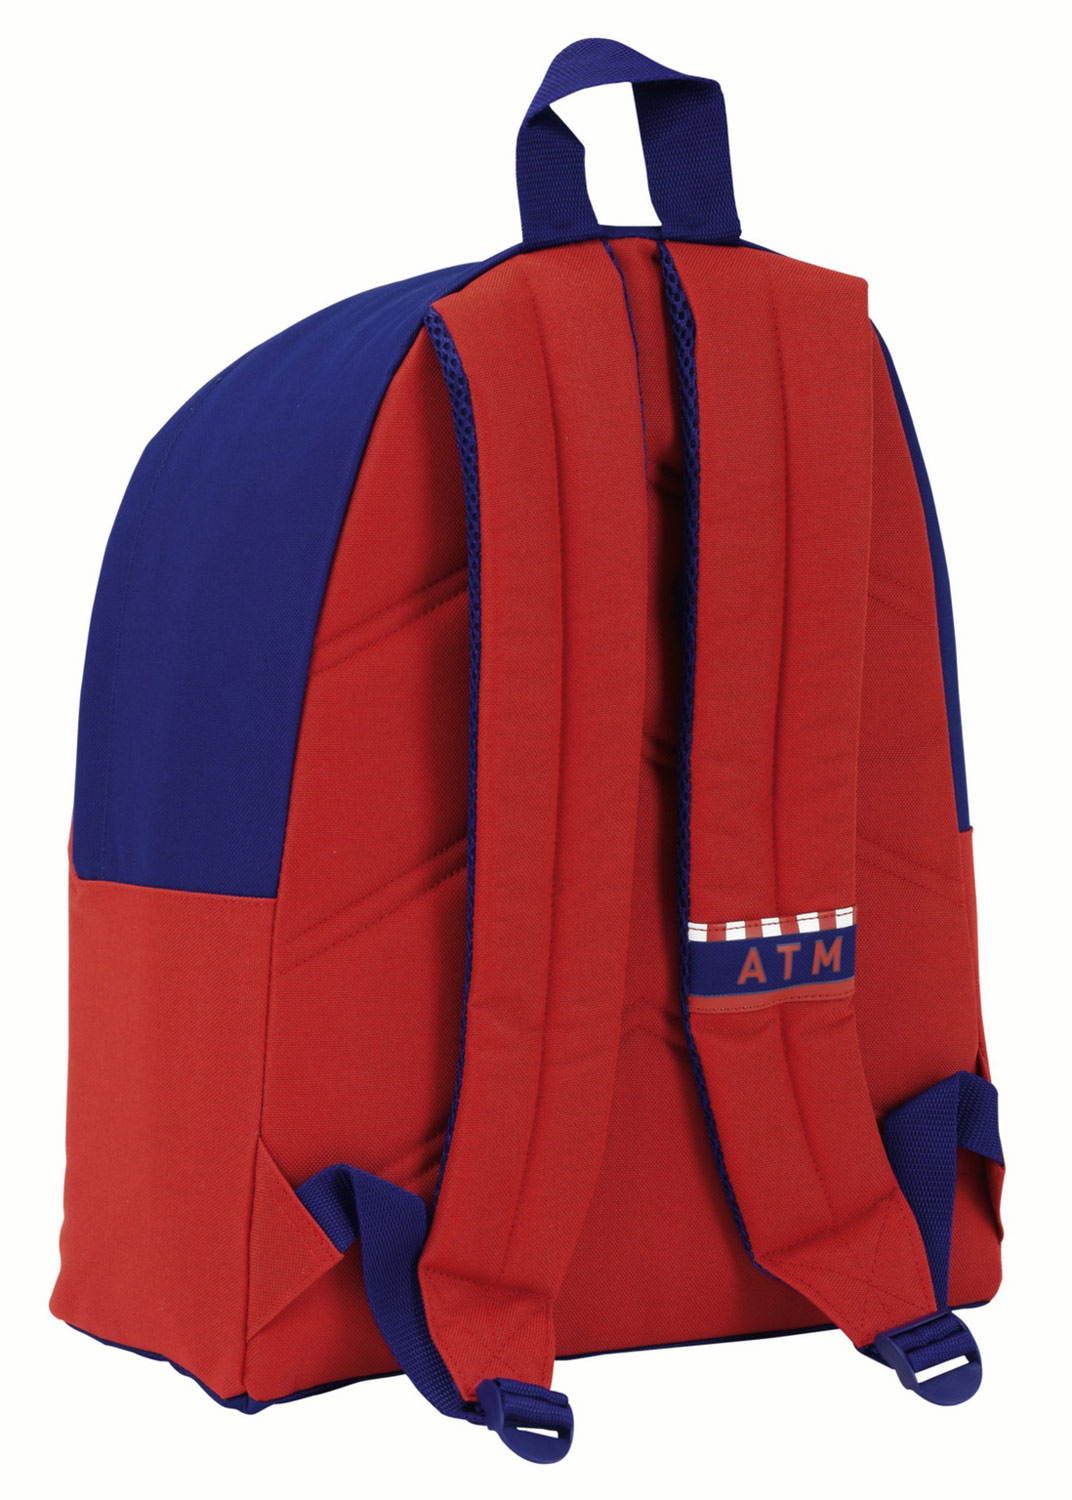 OFFICIAL Atletico de Madrid Day Pack Backpack – image 2